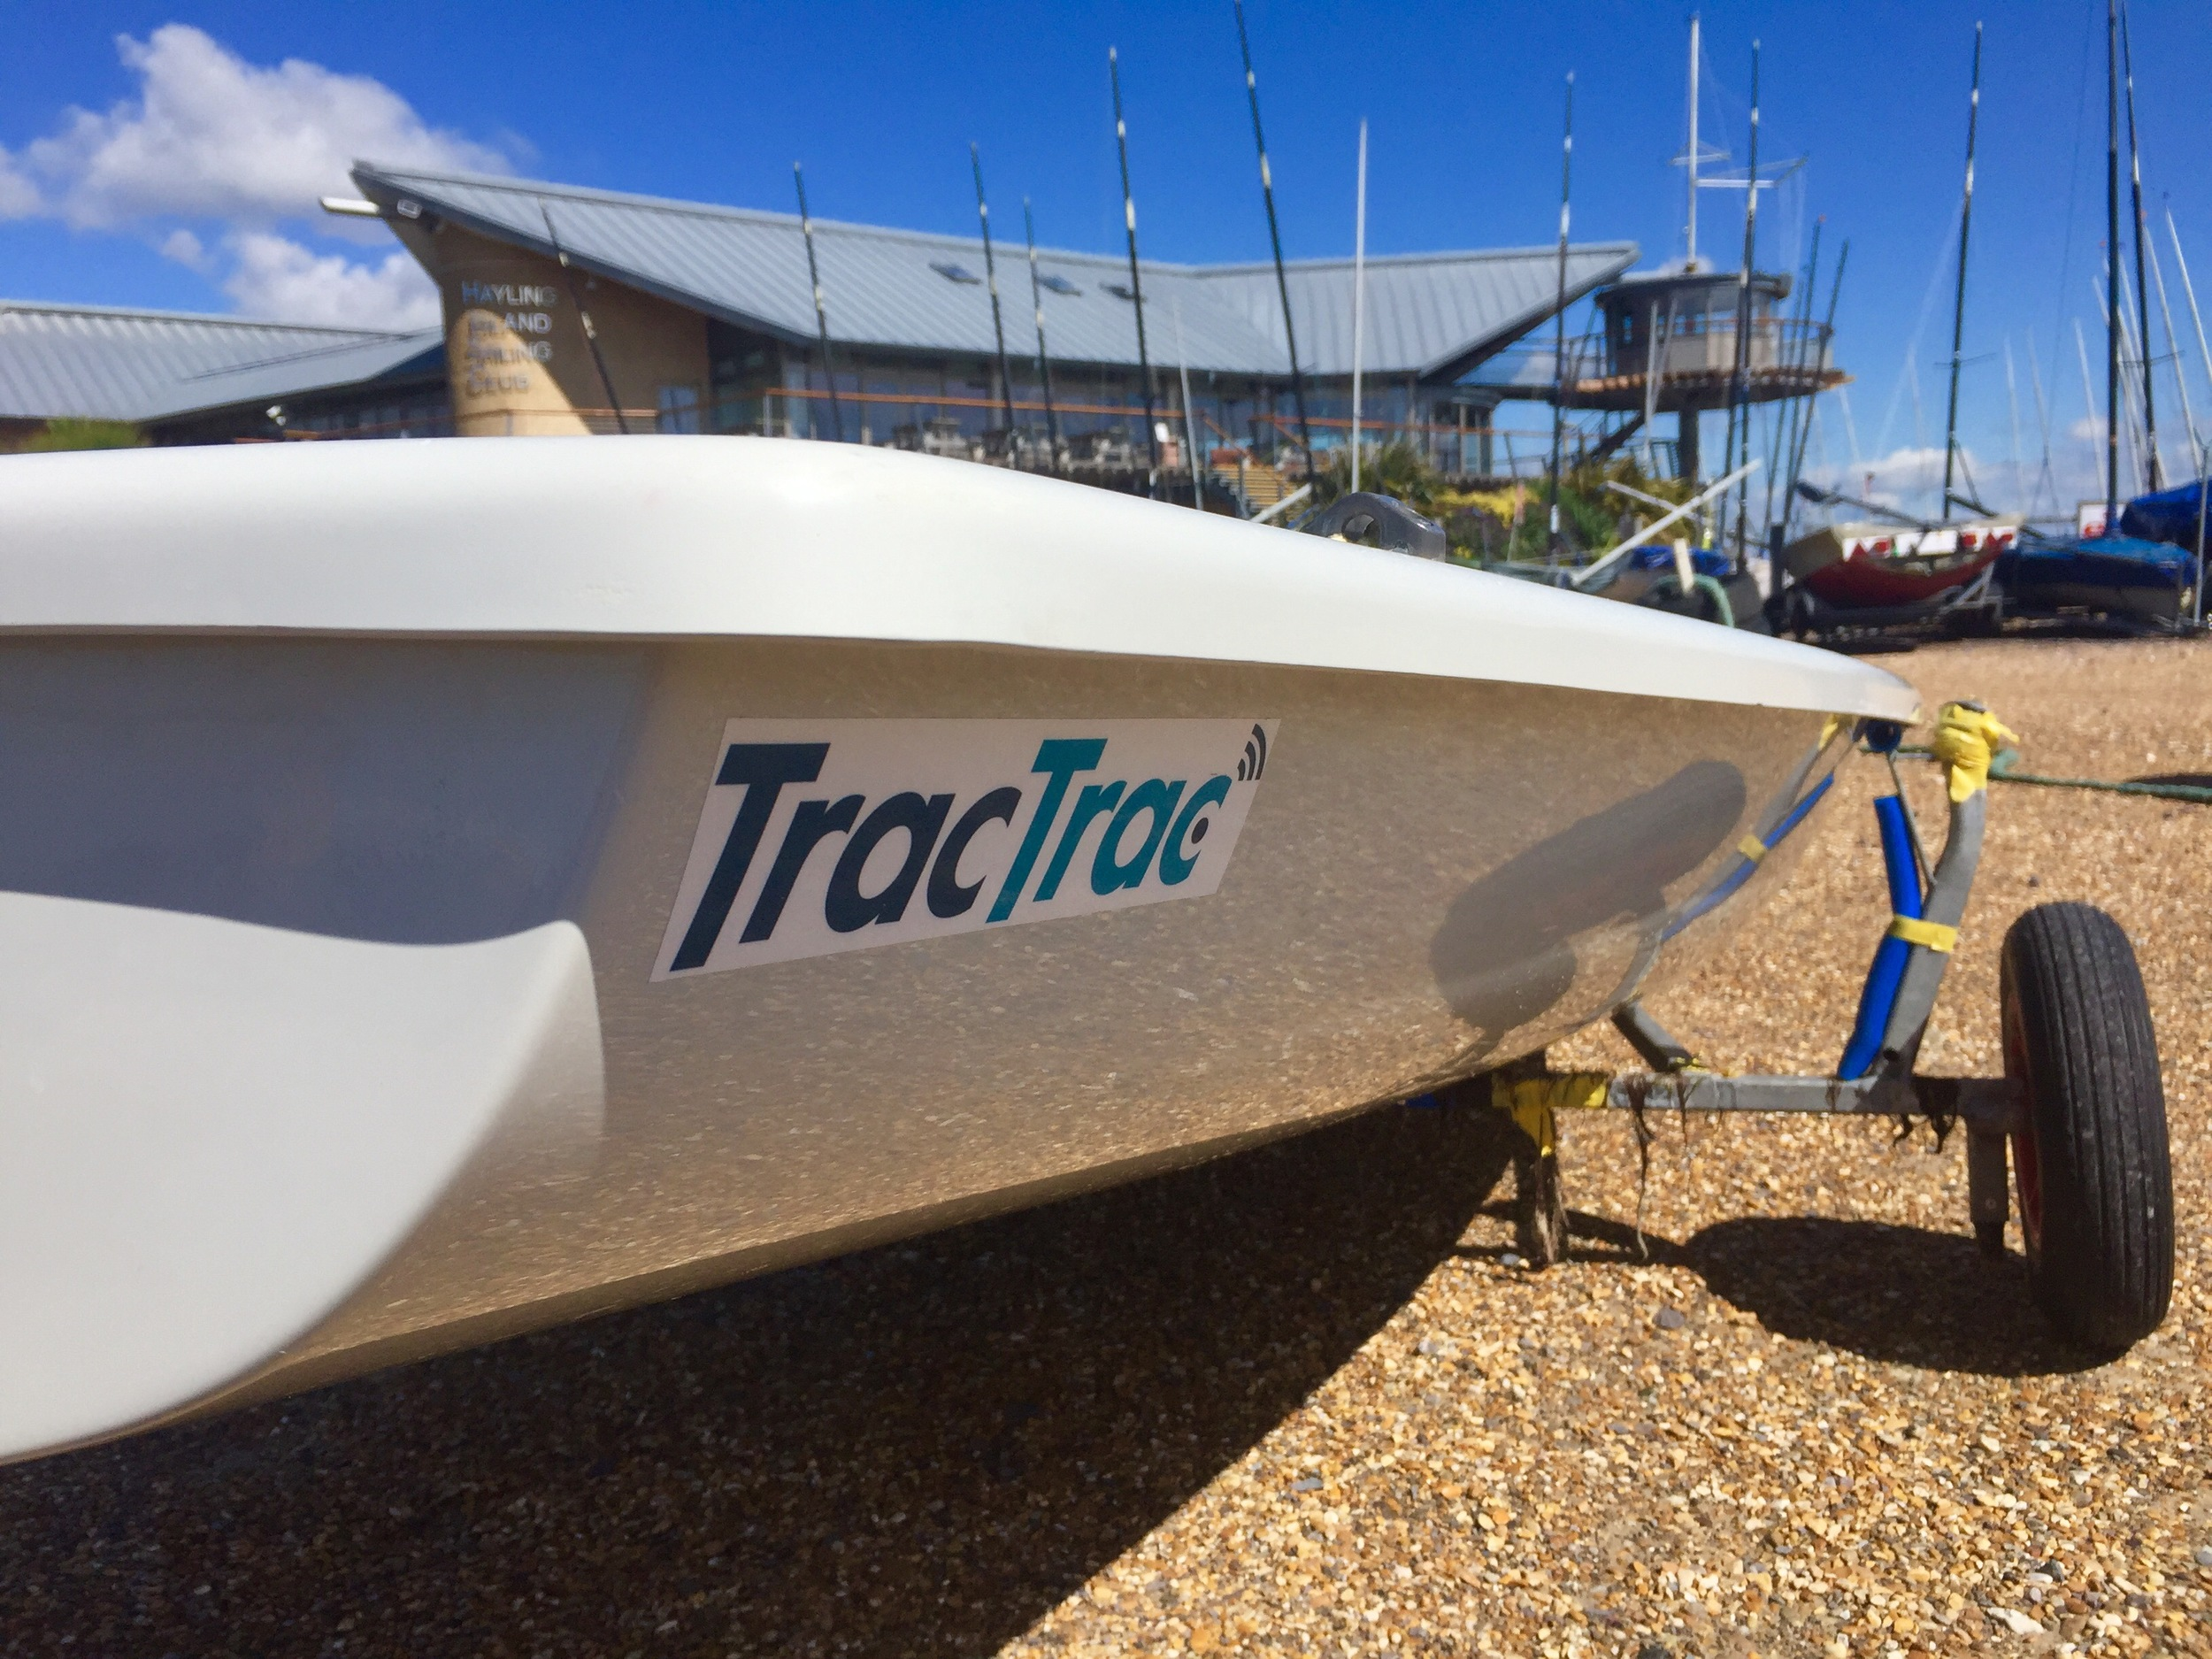 One of my sponsors, TracTrac UK, stickers on my boat.